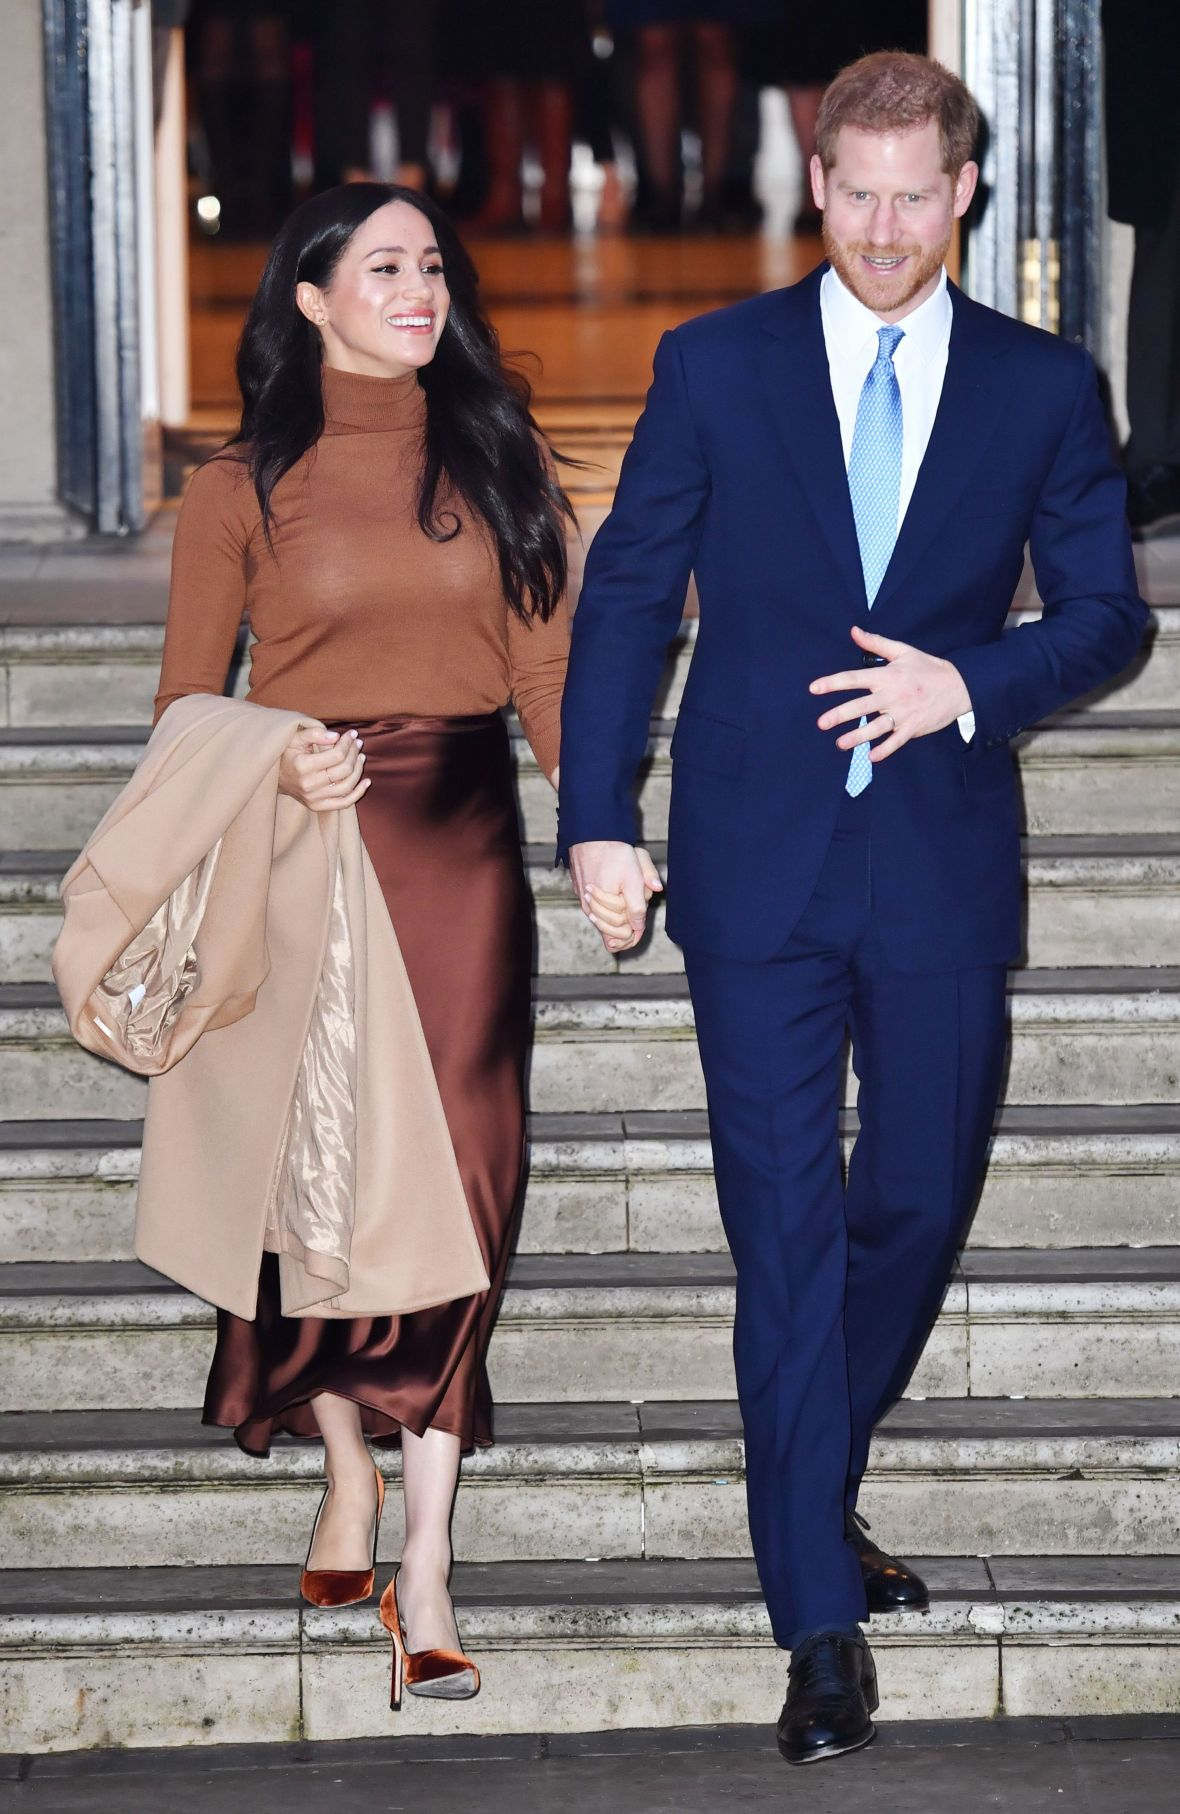 Prince Harry and Meghan Markle Disappointed About Titles